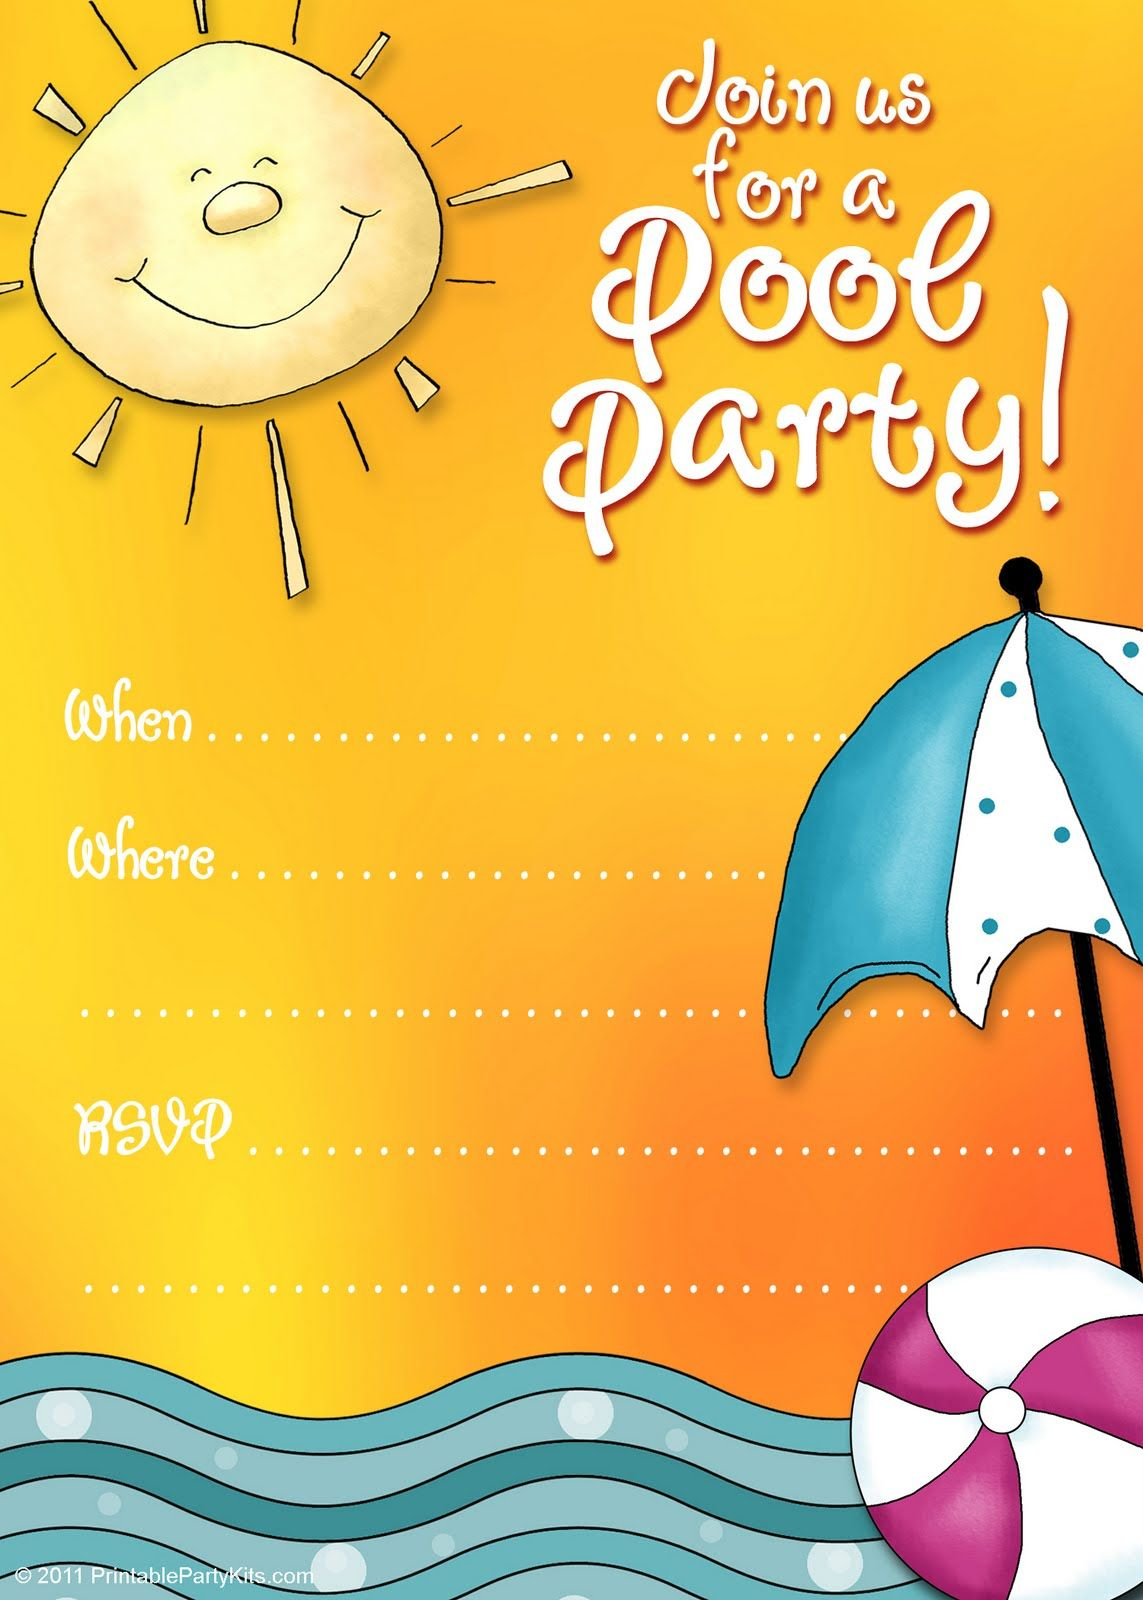 Free Printable Party Invitations: Summer Pool Party Invites - Free Printable Pool Party Invitations